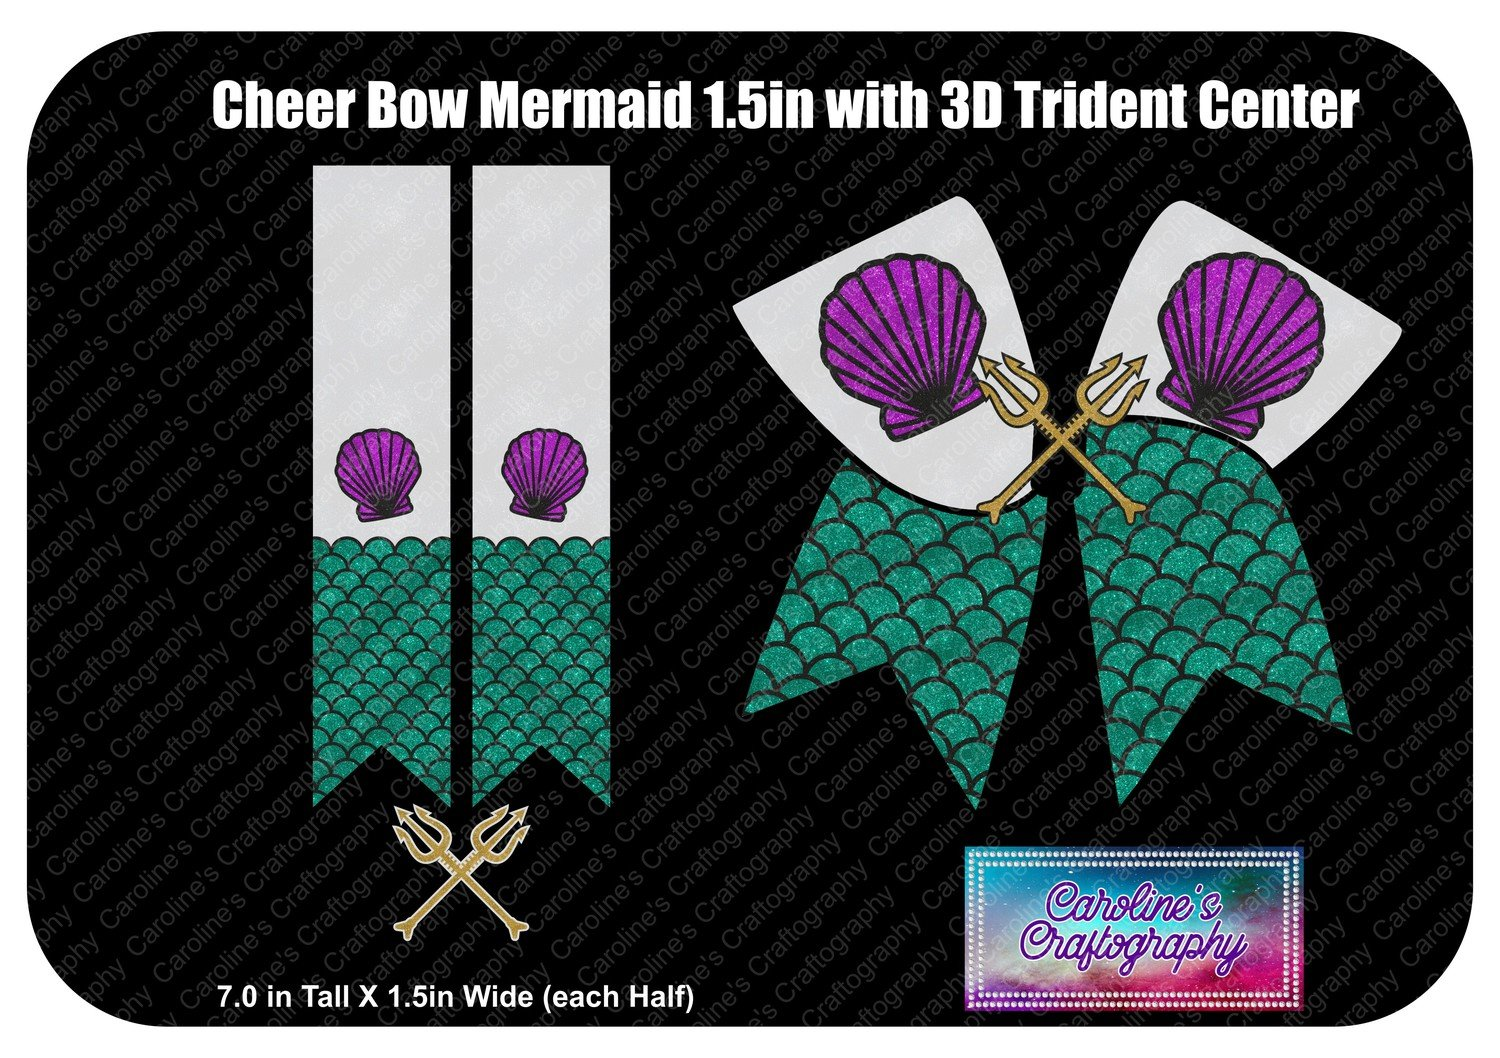 Cheer Bow Mermaid 3D Trident Center 1.5 inch Vinyl